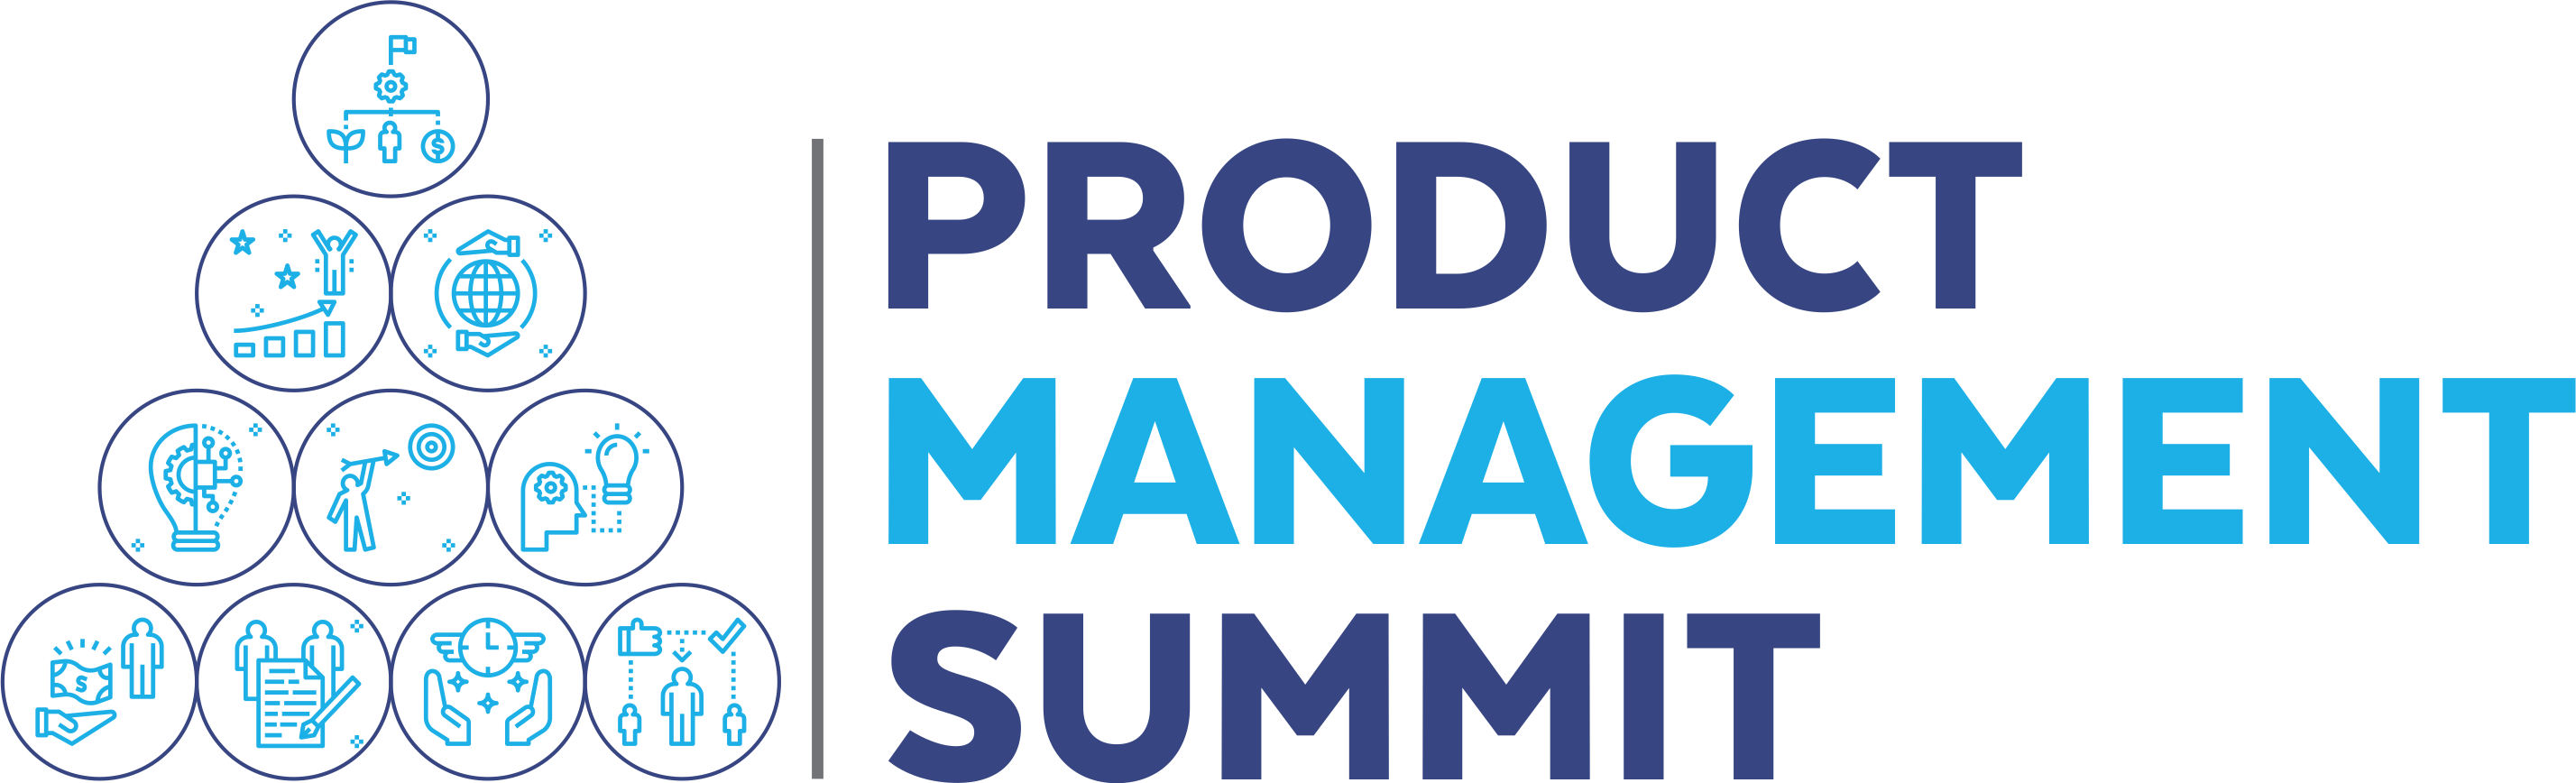 Product Management Summit